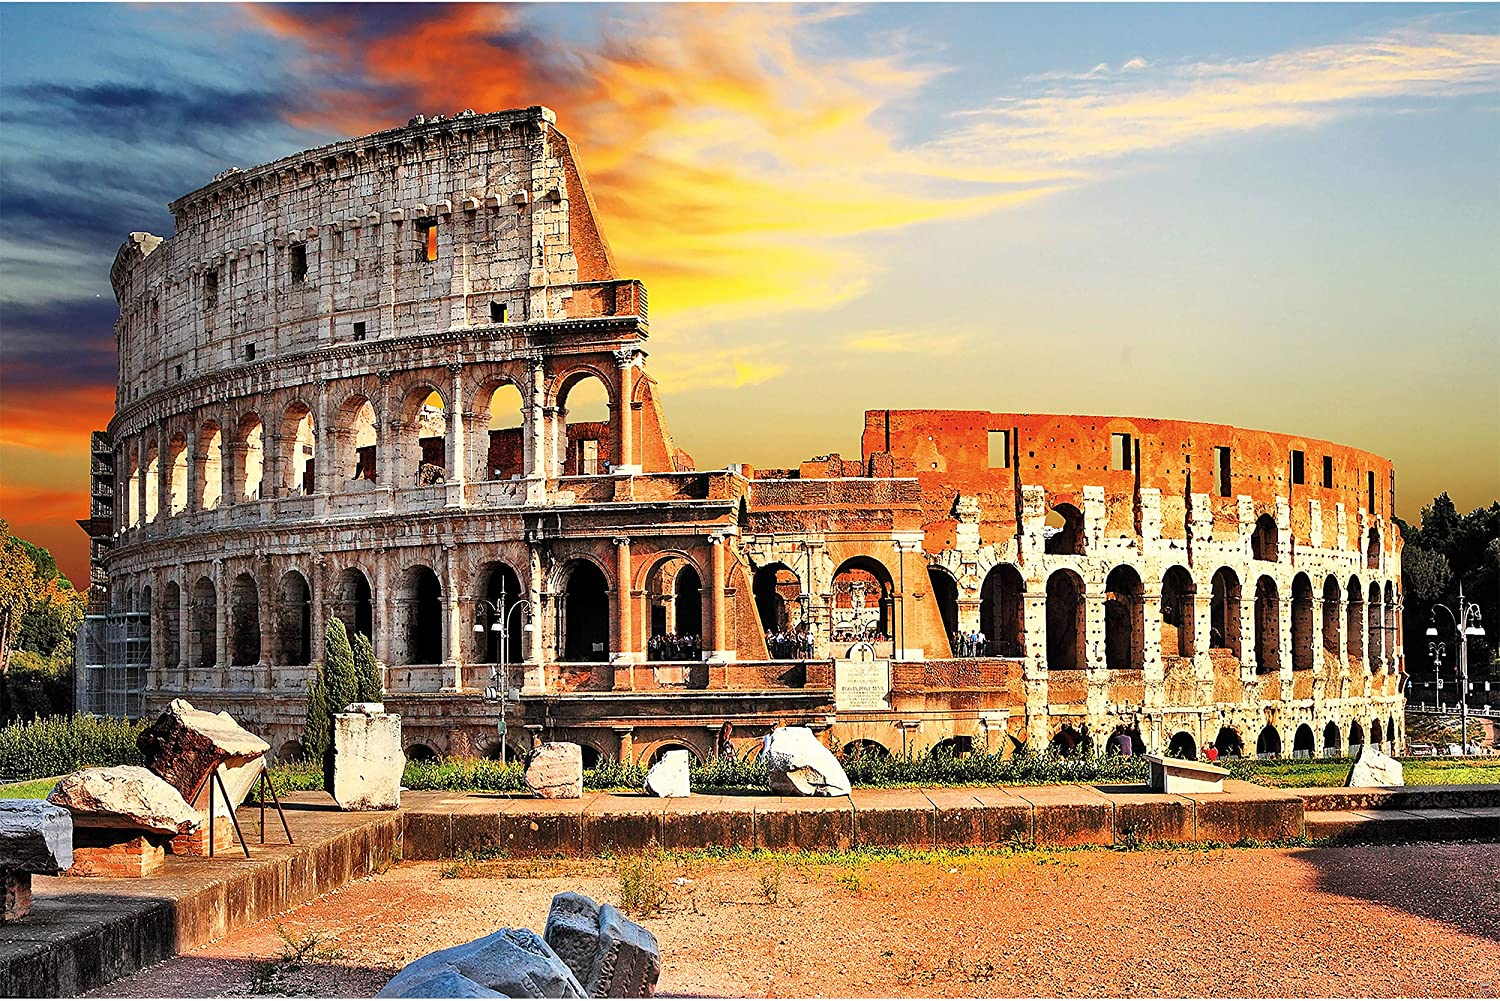 GREAT ART Poster – Rome Amphitheater Italy – Picture Decoration Landmark Ancient Coliseum Historical Site Architecture Gladiator Fights Image Photo Decor Wall Mural (55x39.4in - 140x100cm)